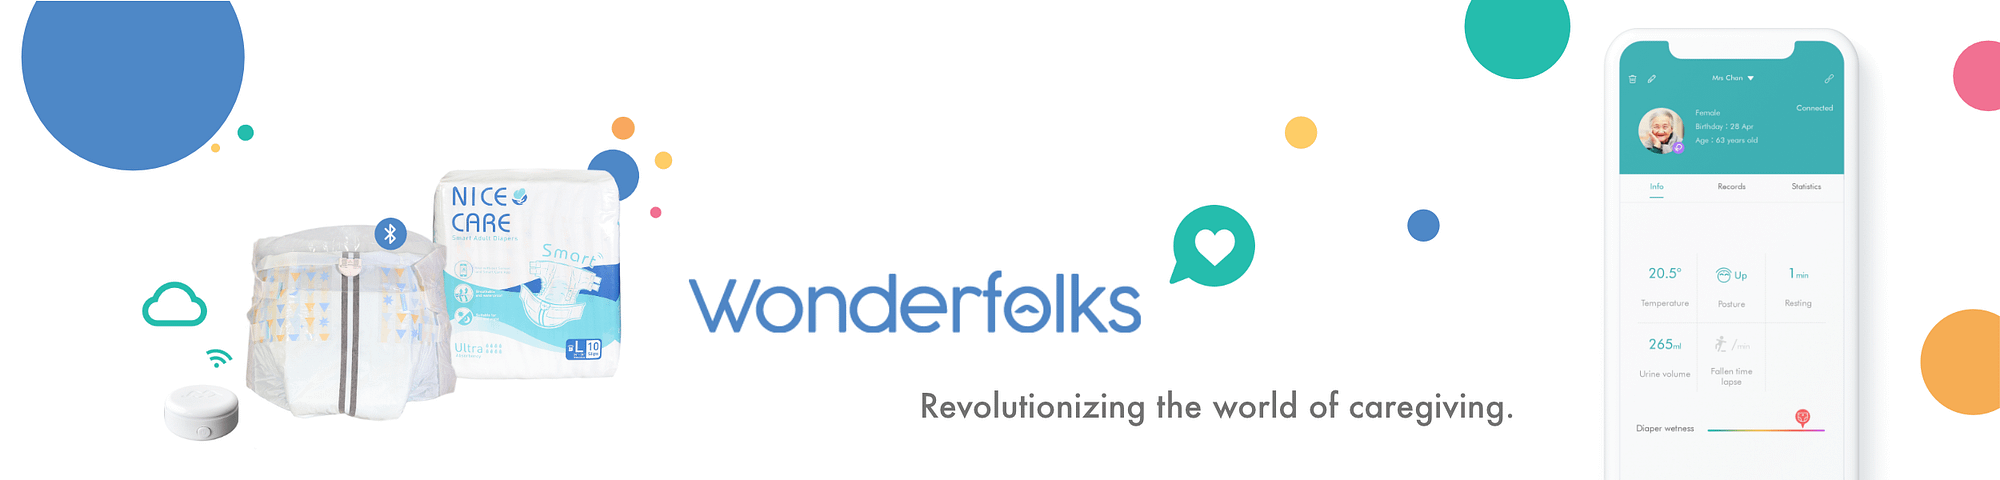 Wonderfolks-shop-banner